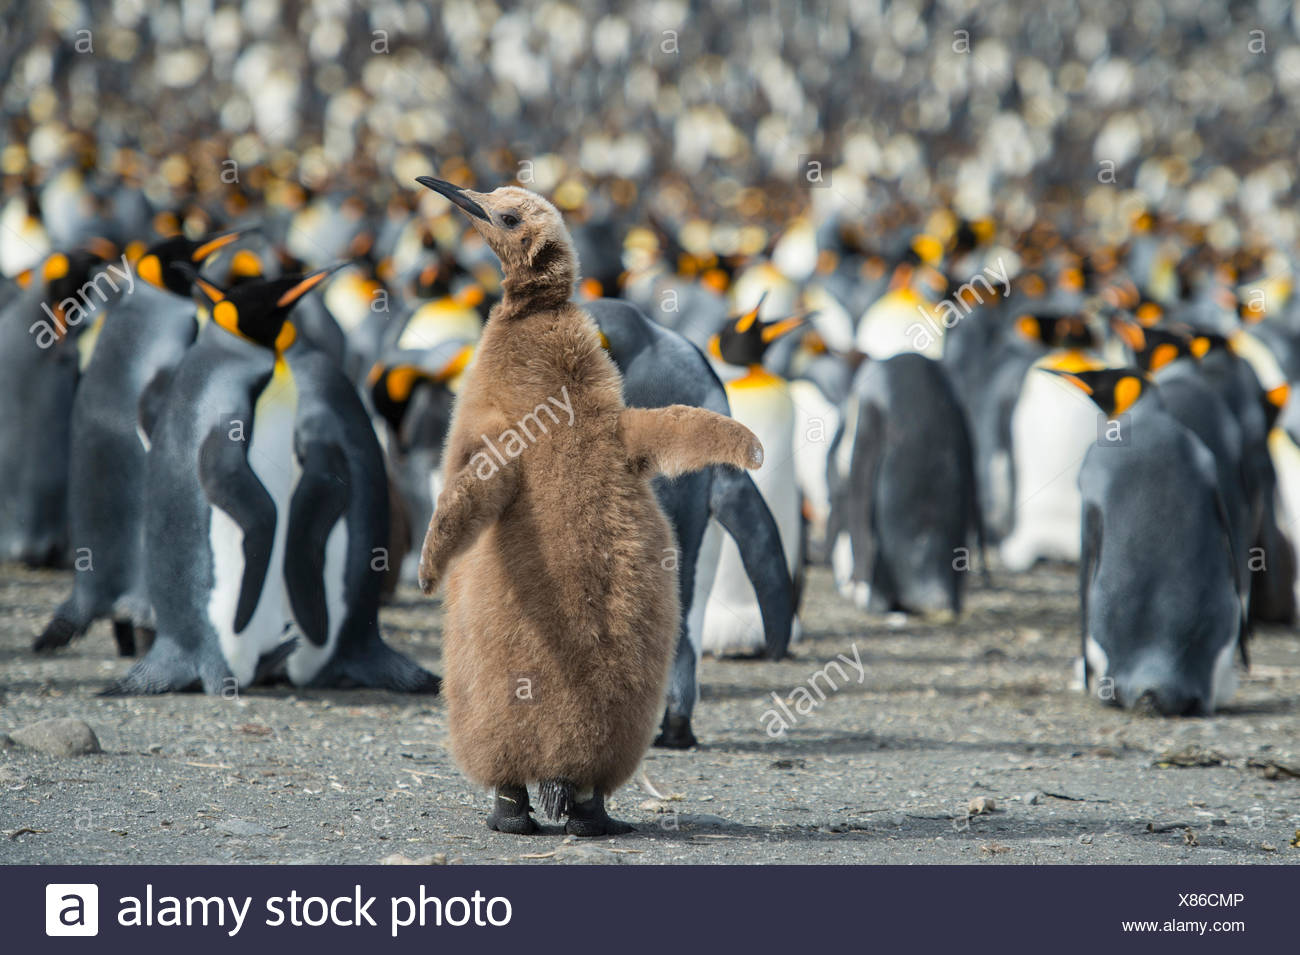 King penguin, Aptenodytes patagonicus, chick stands out in a crowd. - Stock Image